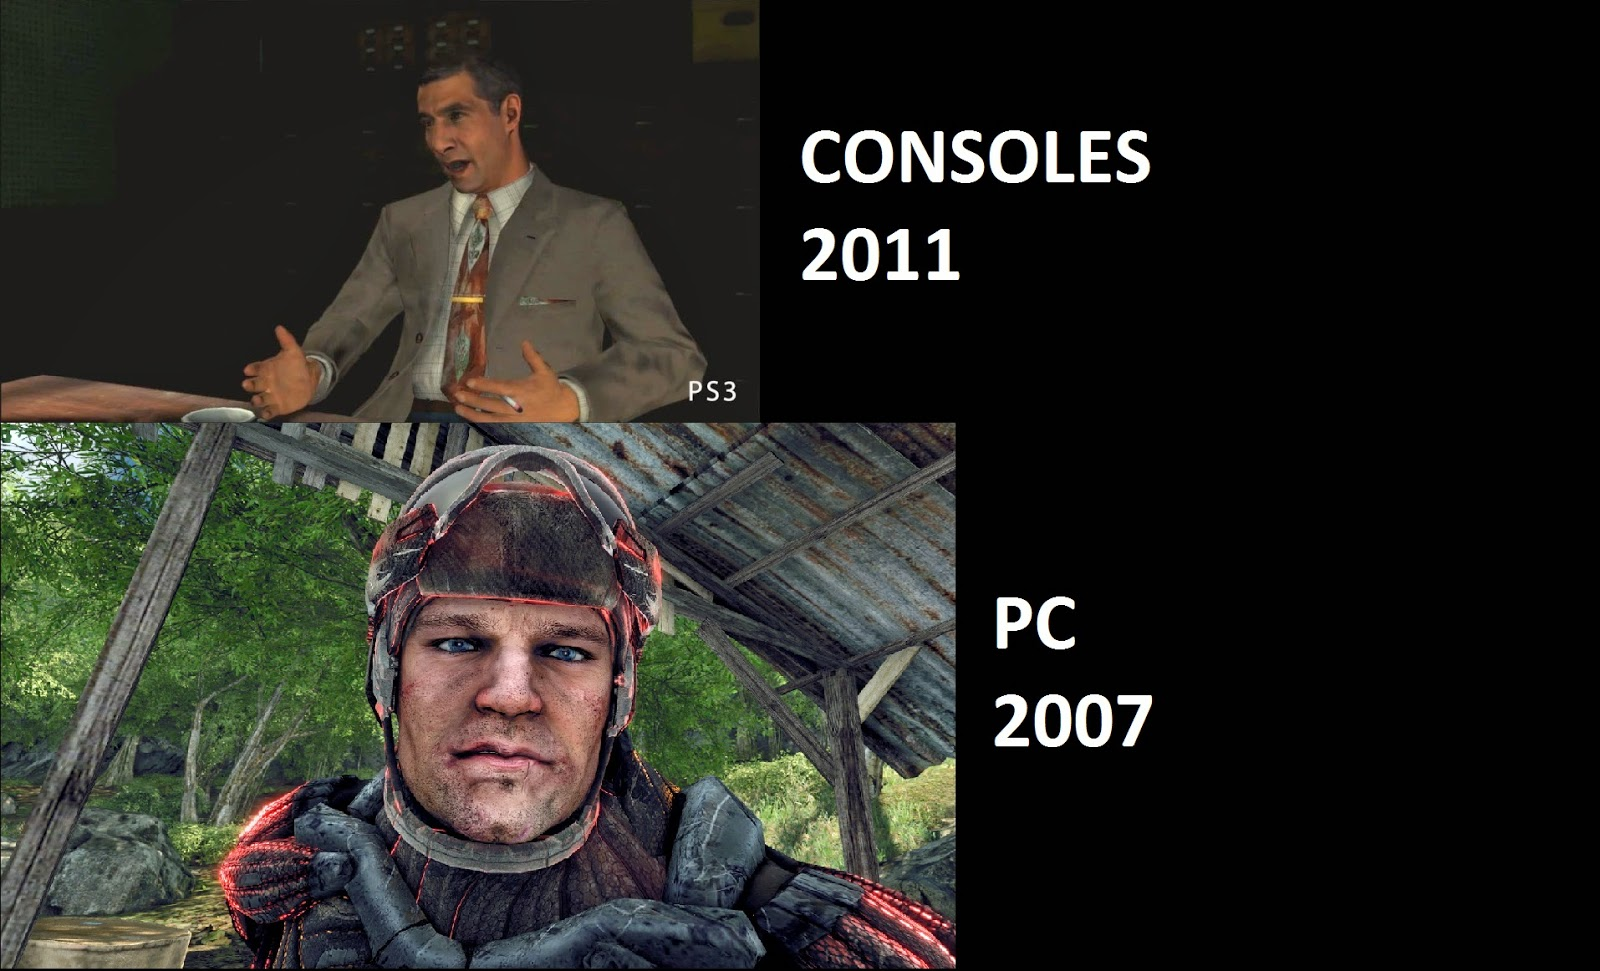 Compare contrast pc and console gaming